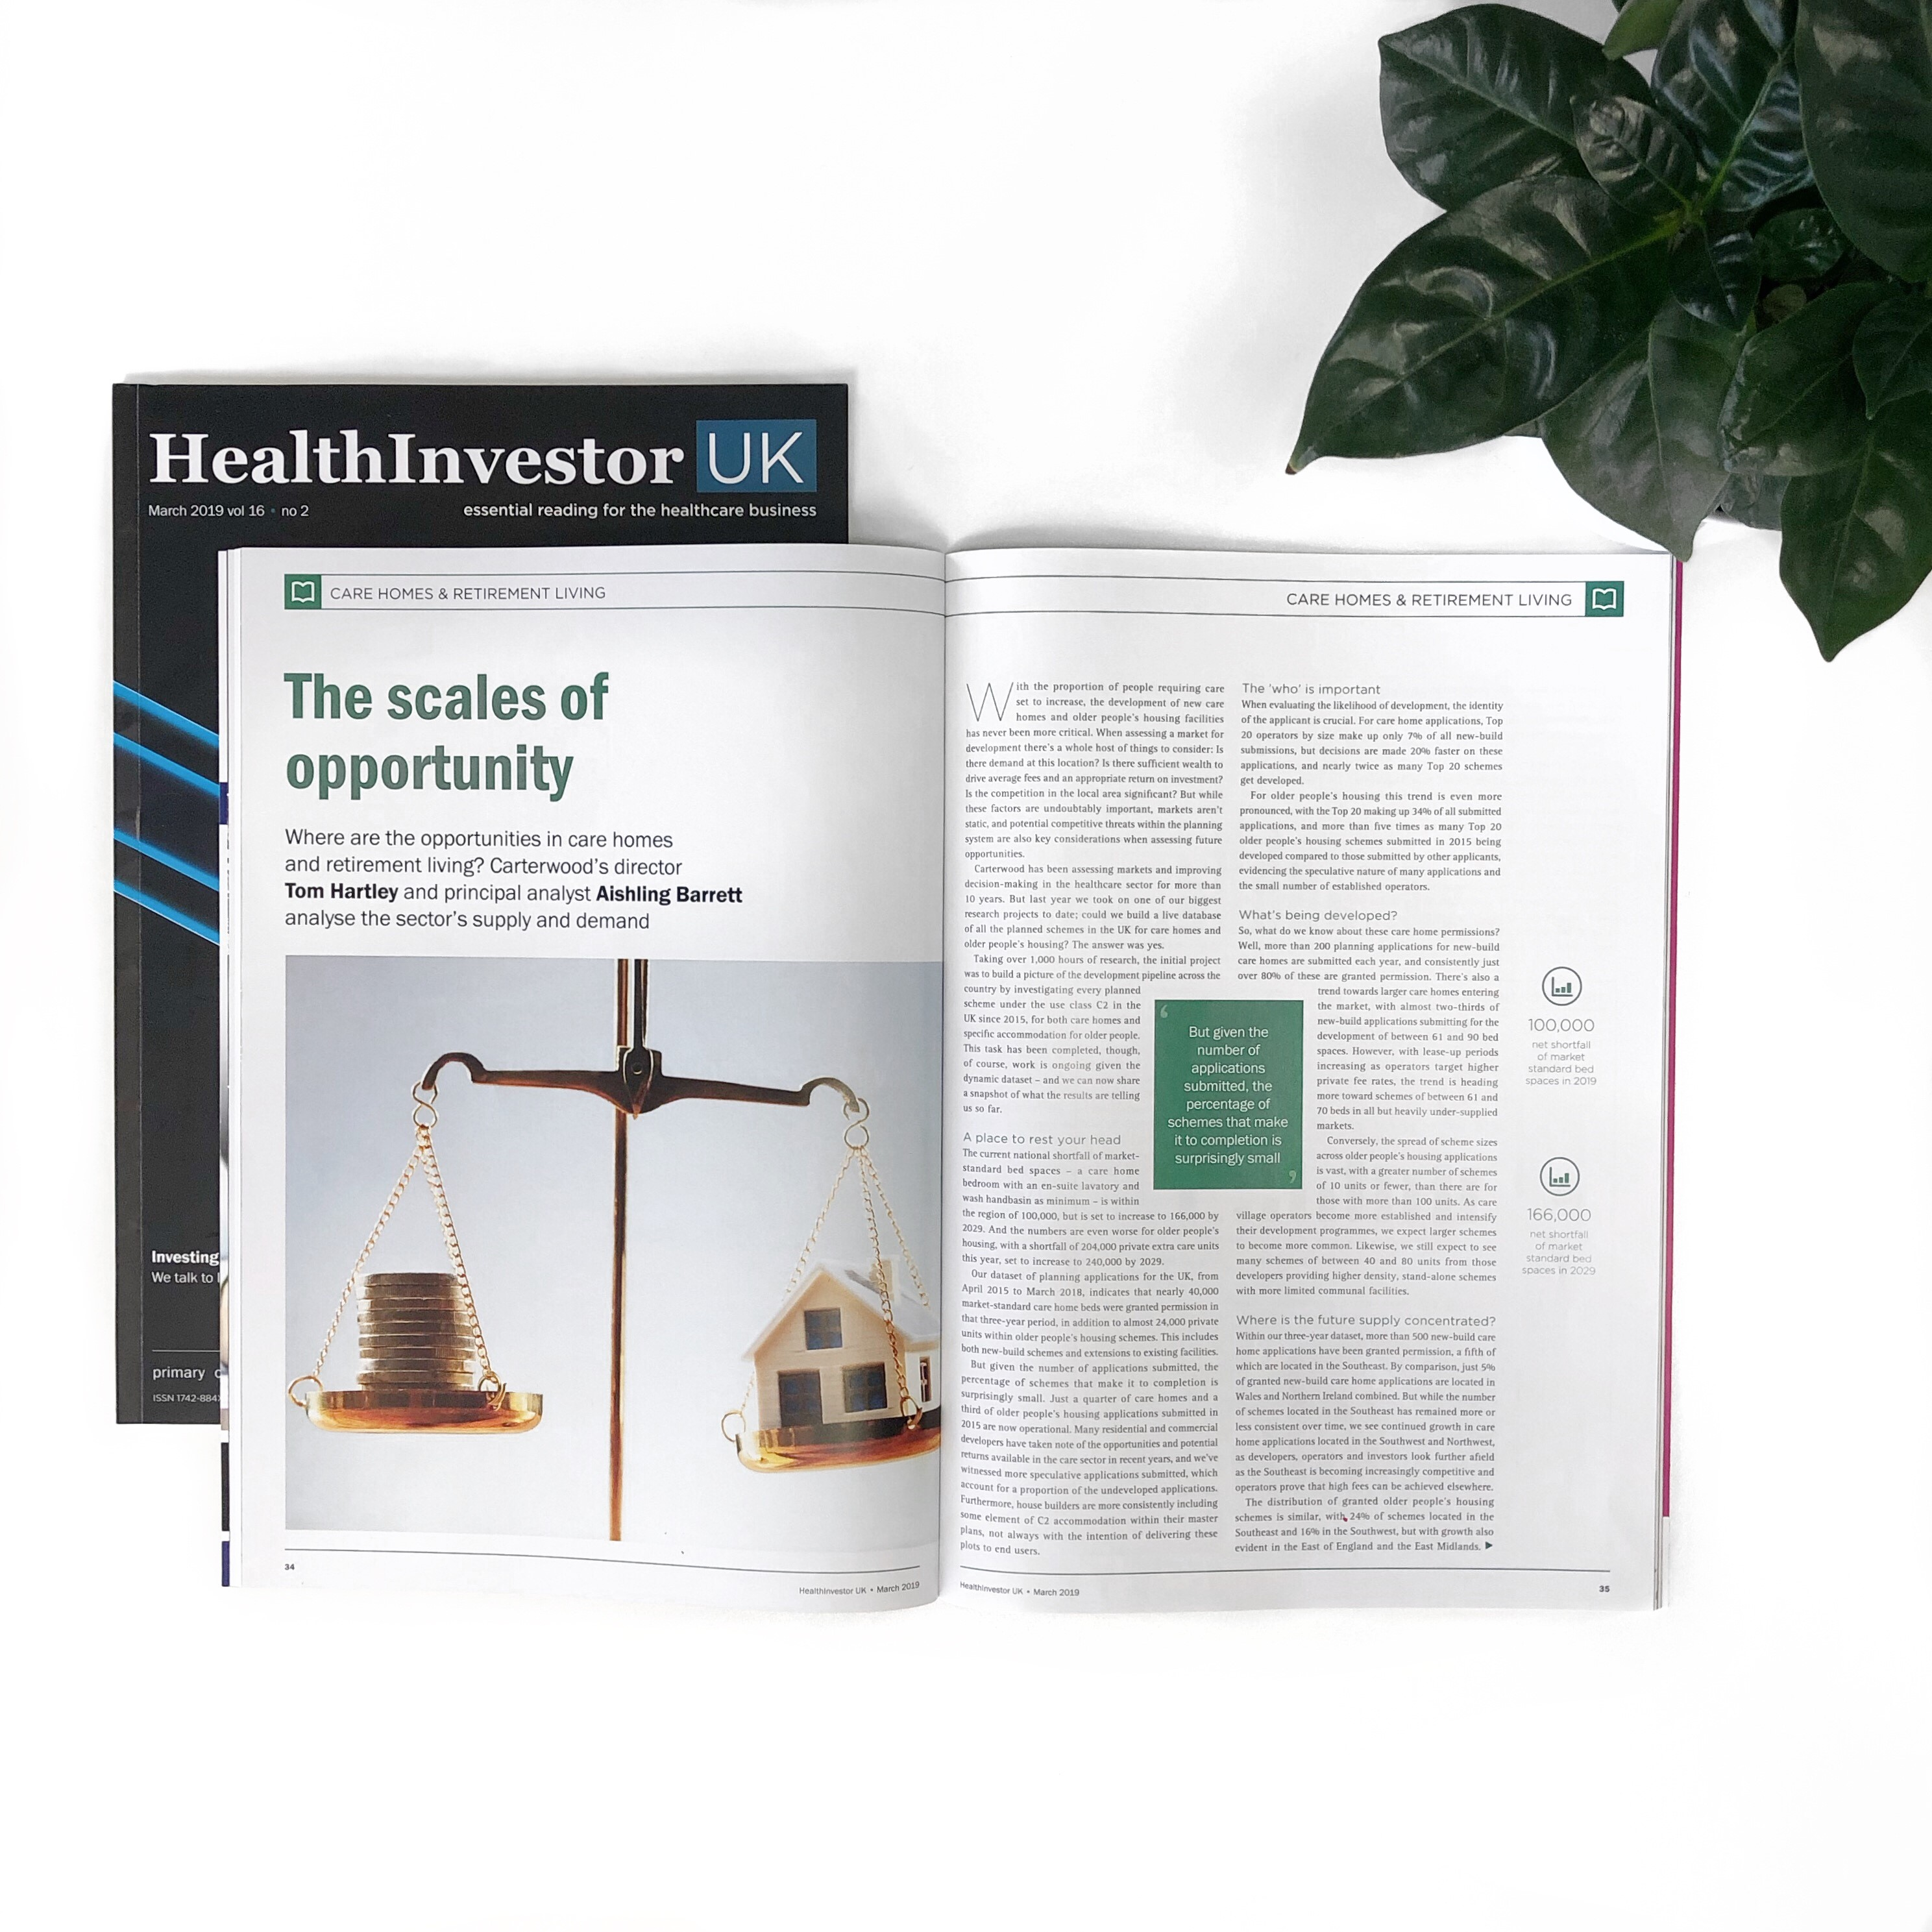 HealthInvestor: The scales of opportunity